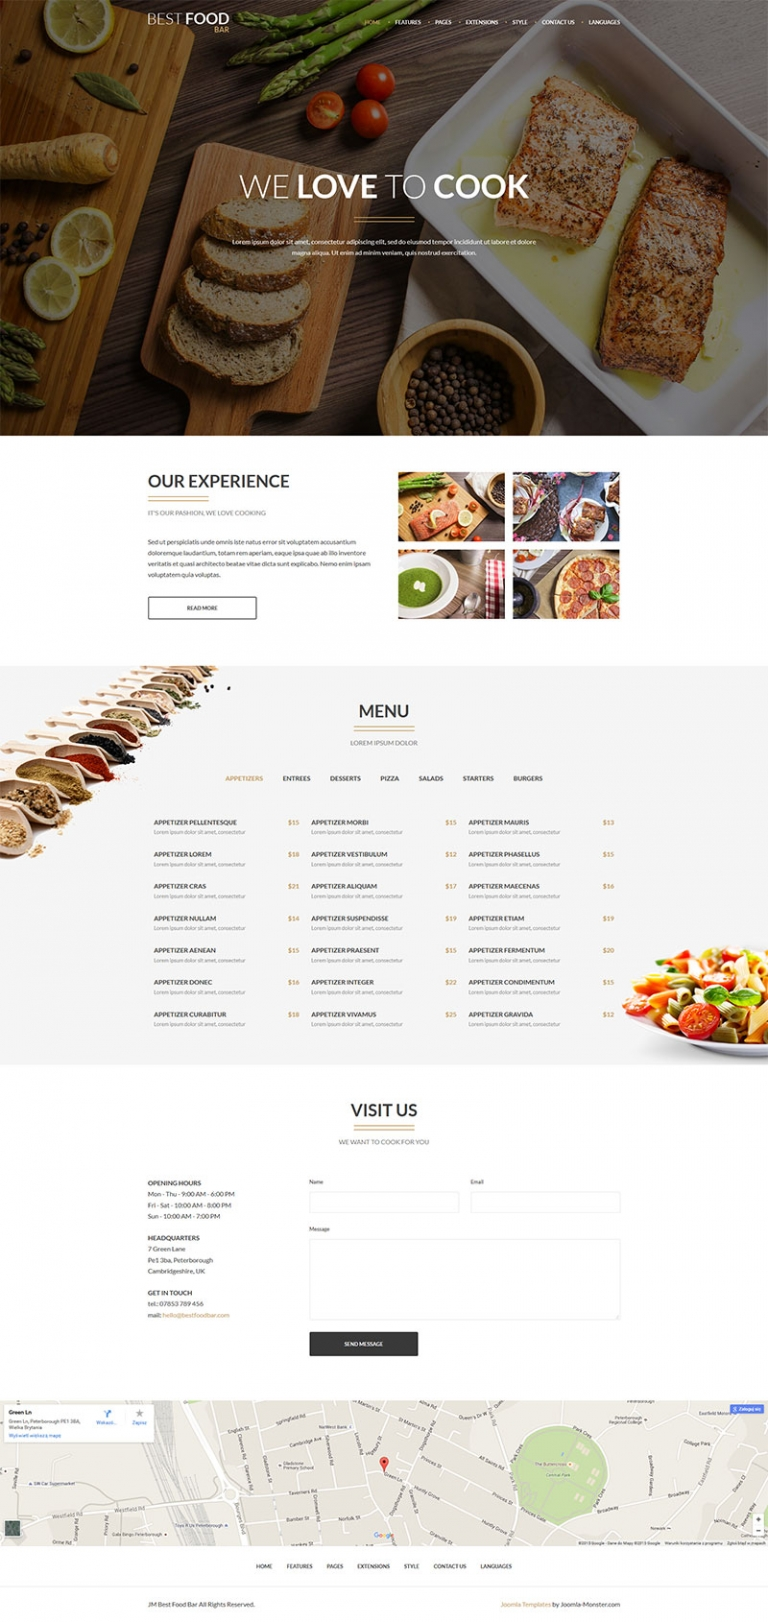 Joomla templates jm best food bar joomlahacks jm best food bar is an amazing food joomla template created specially for best food bar food restaurant services or as a great solution for blog about forumfinder Images